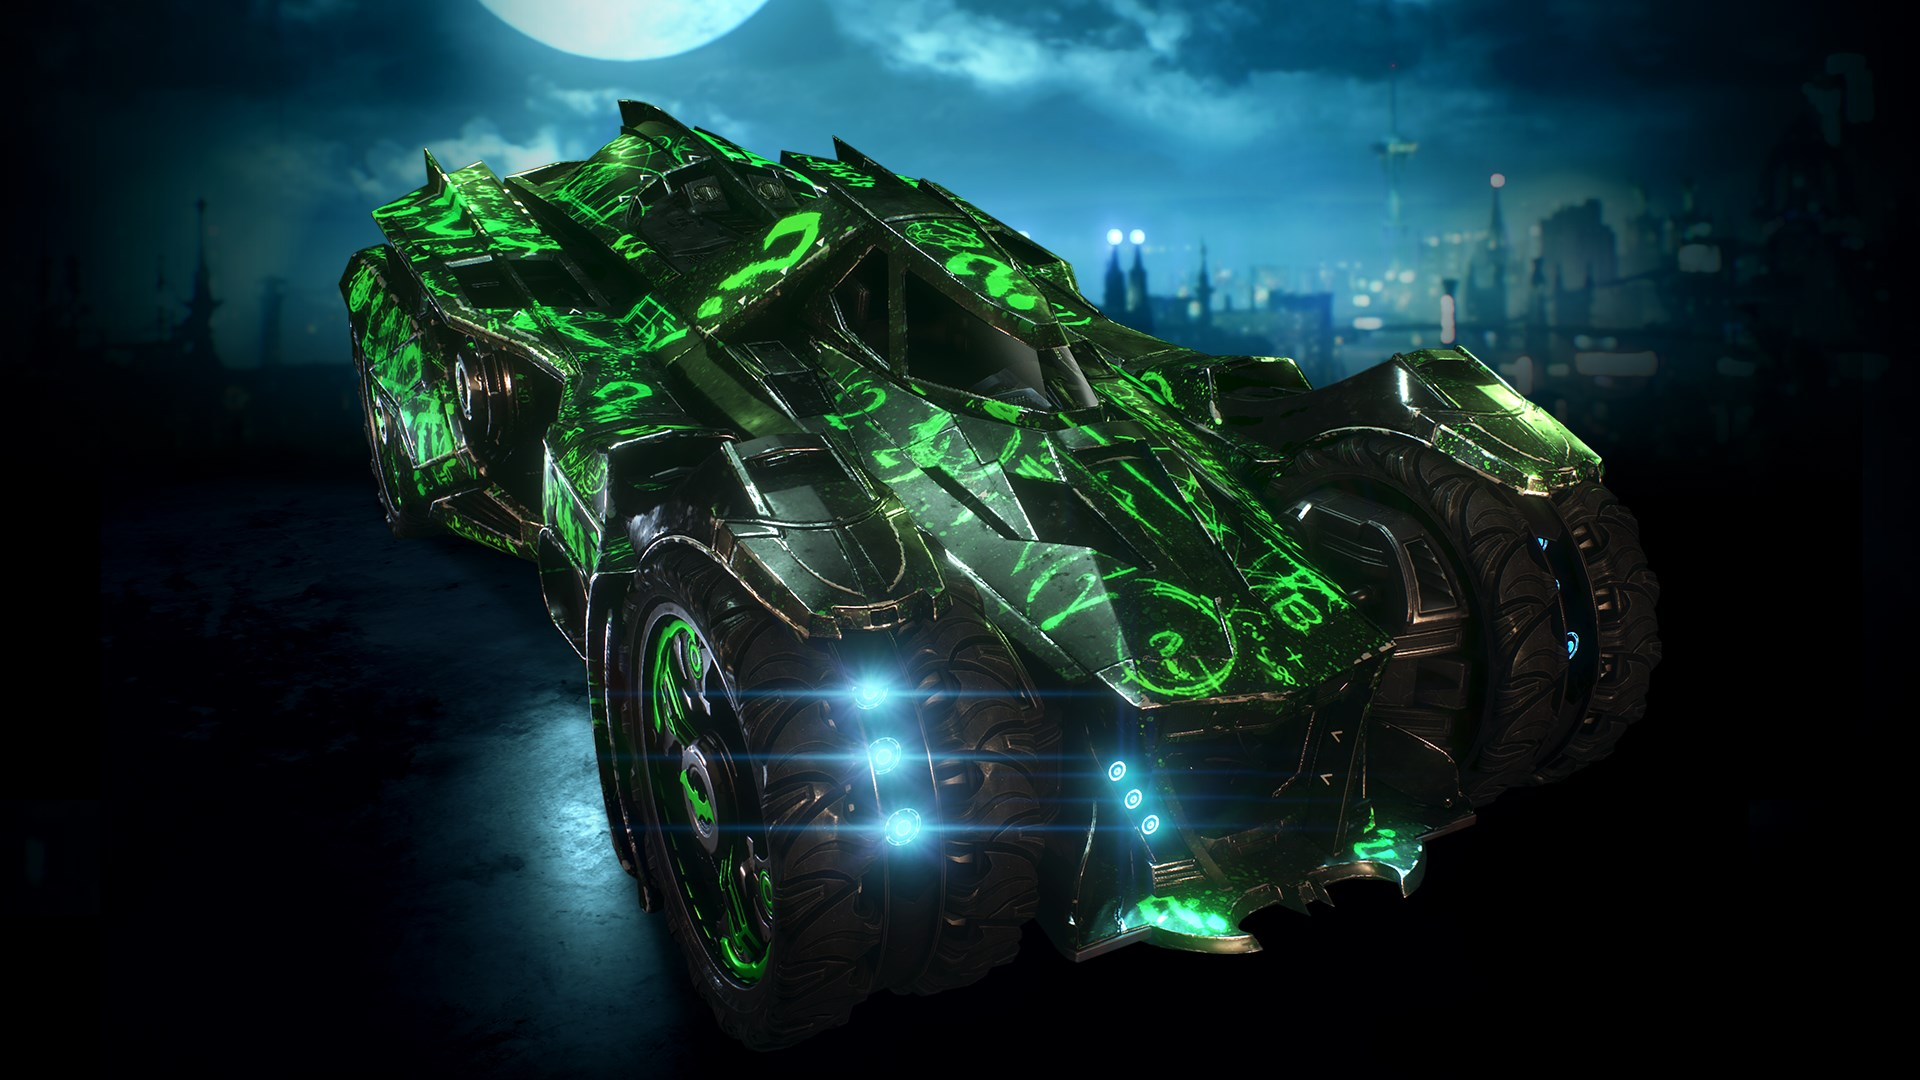 Riddler Themed Batmobile Skin